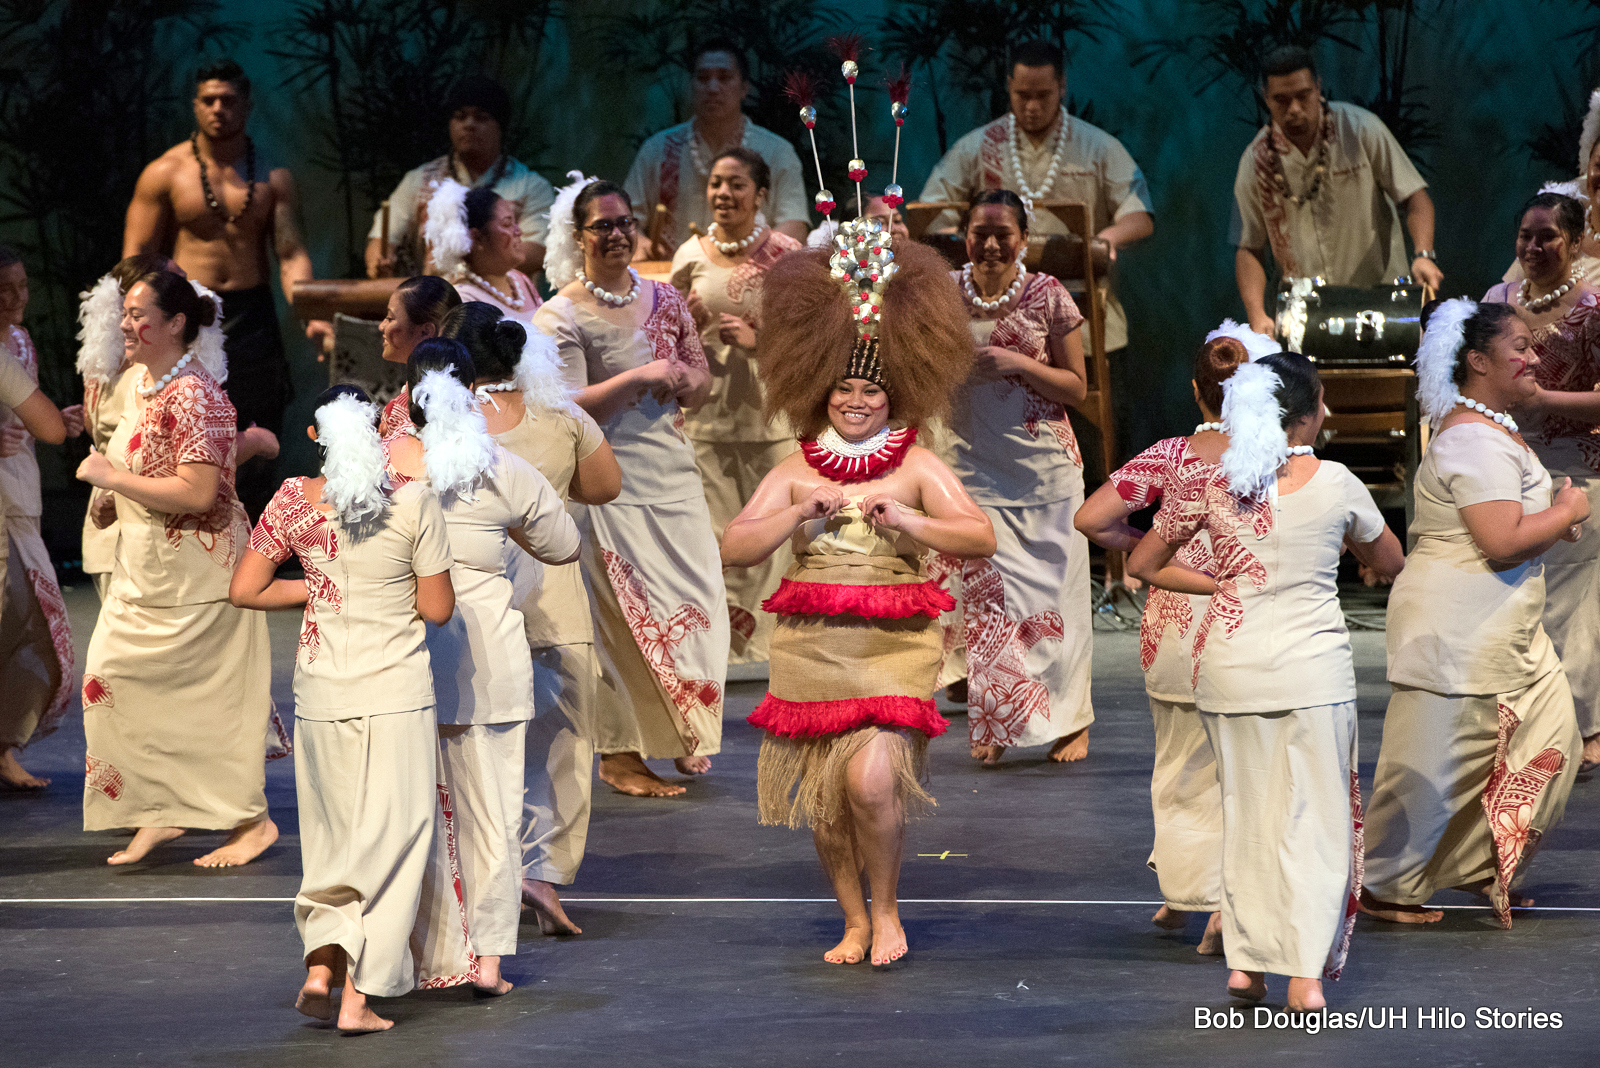 Large group of women and men, beige and red costumes, woman in center with large headdress boldly walking forward, big smile. In background are men with drums and percussion instruments